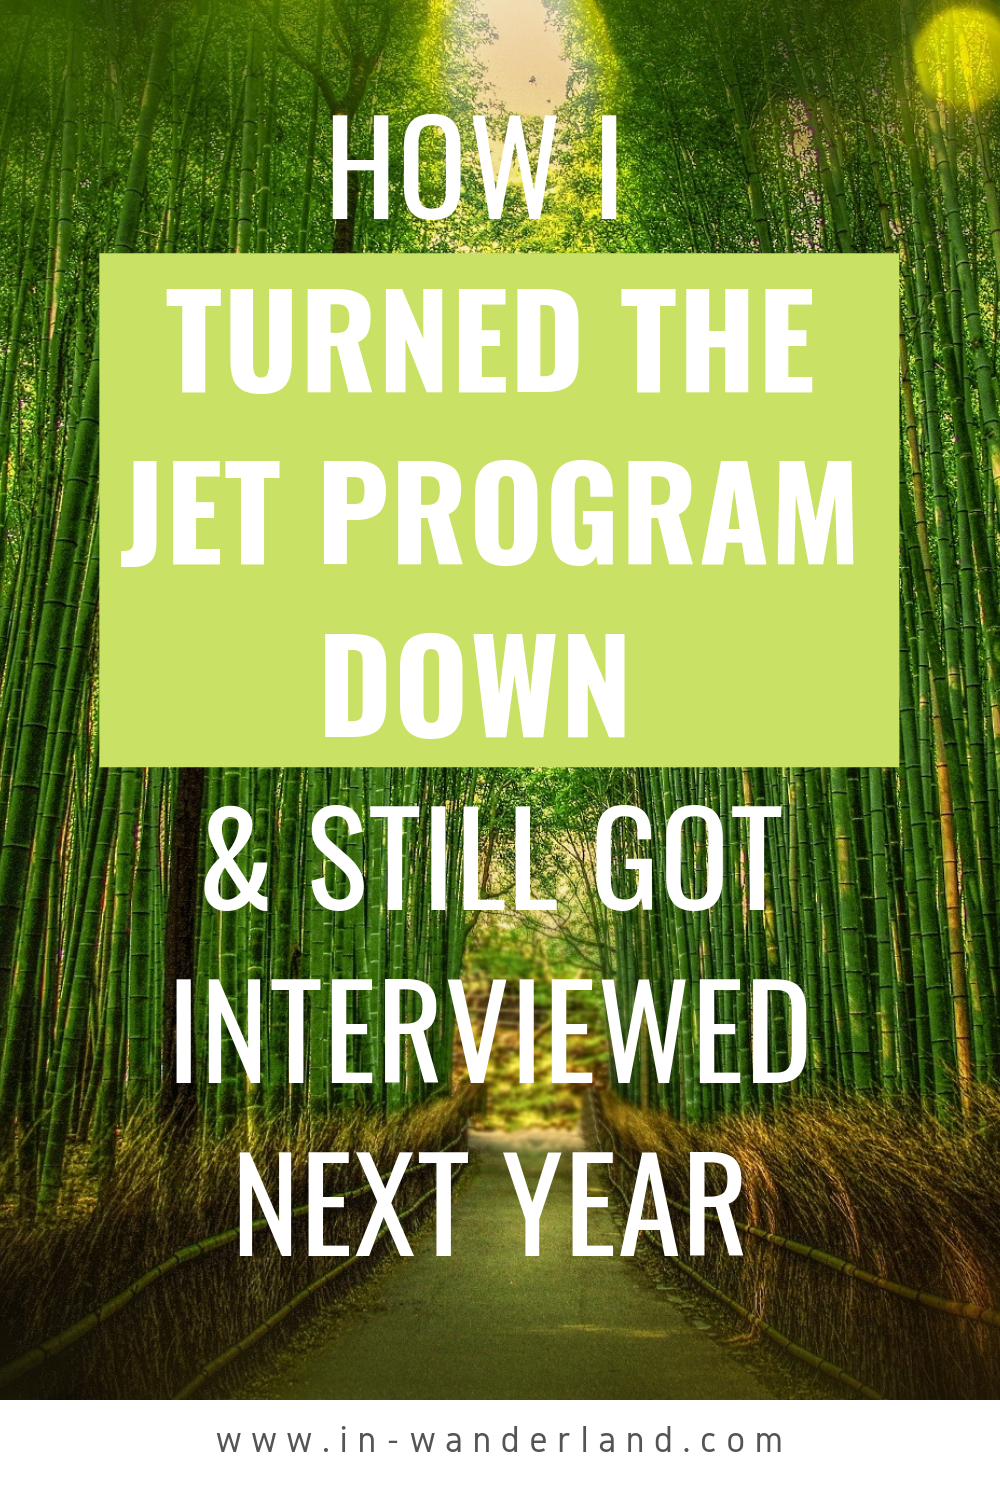 I Declined My JET Program Offer... And Got Another Interview Next Year!